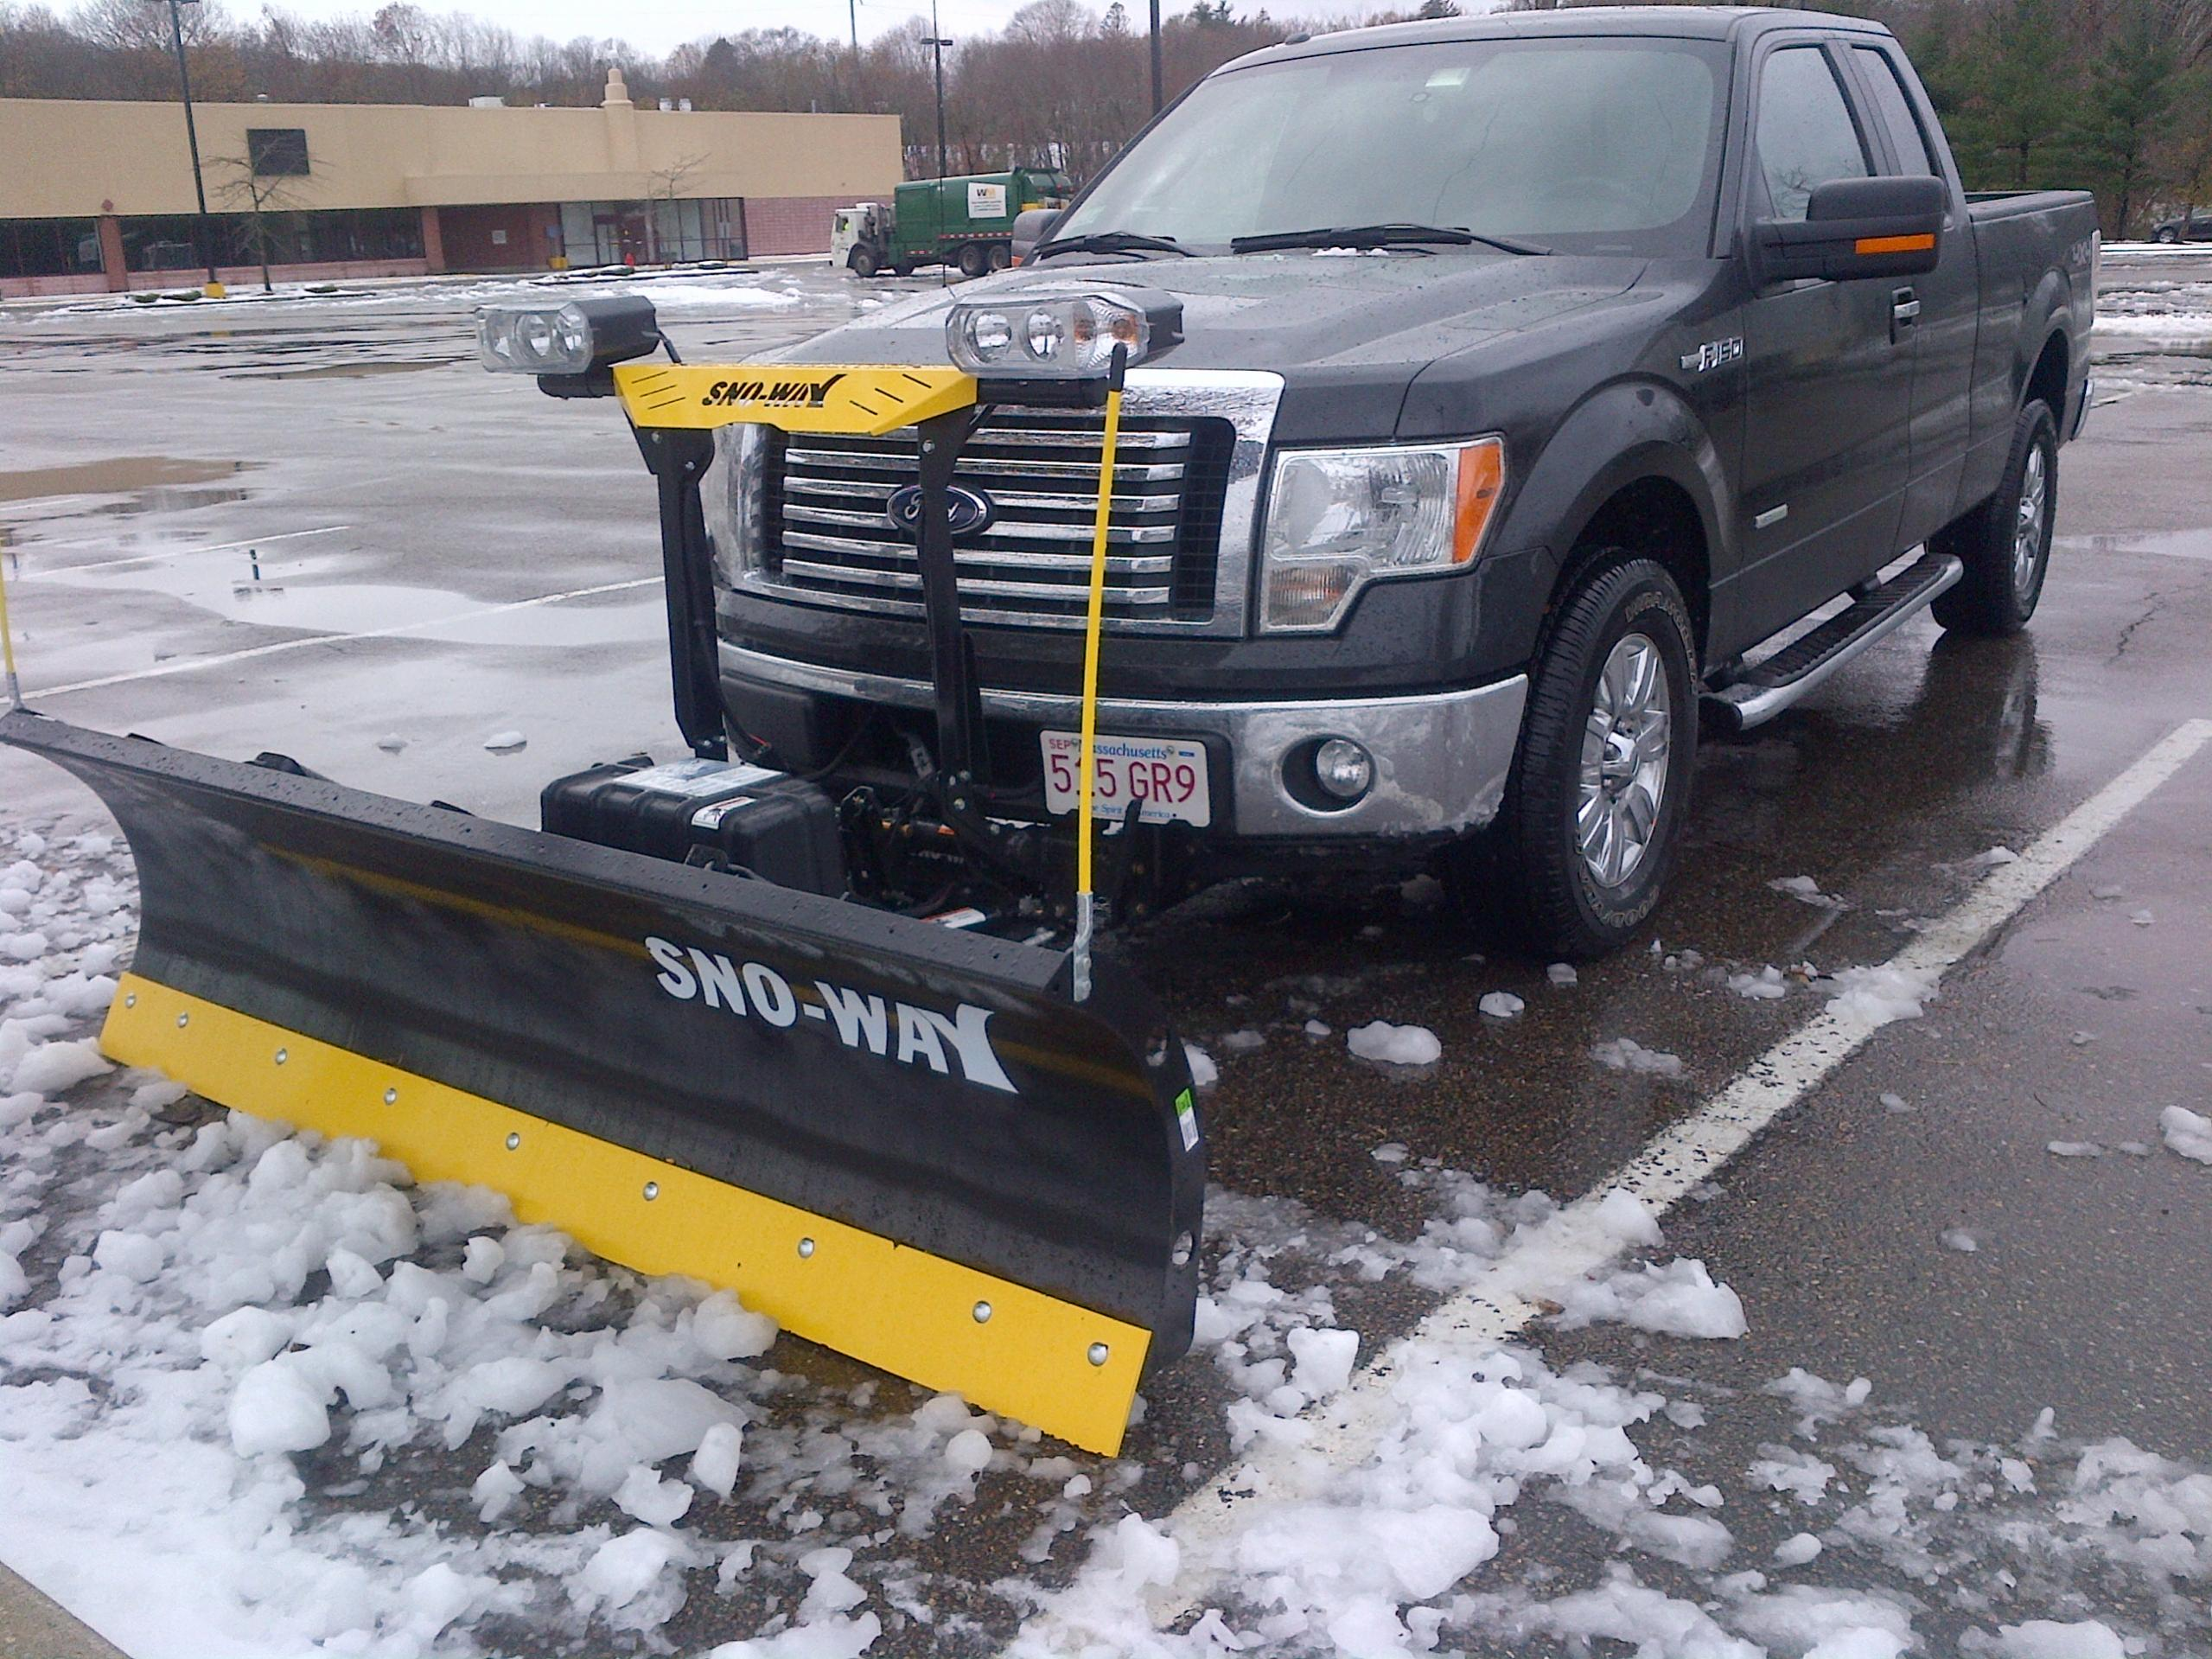 Yes you can plow with the F150